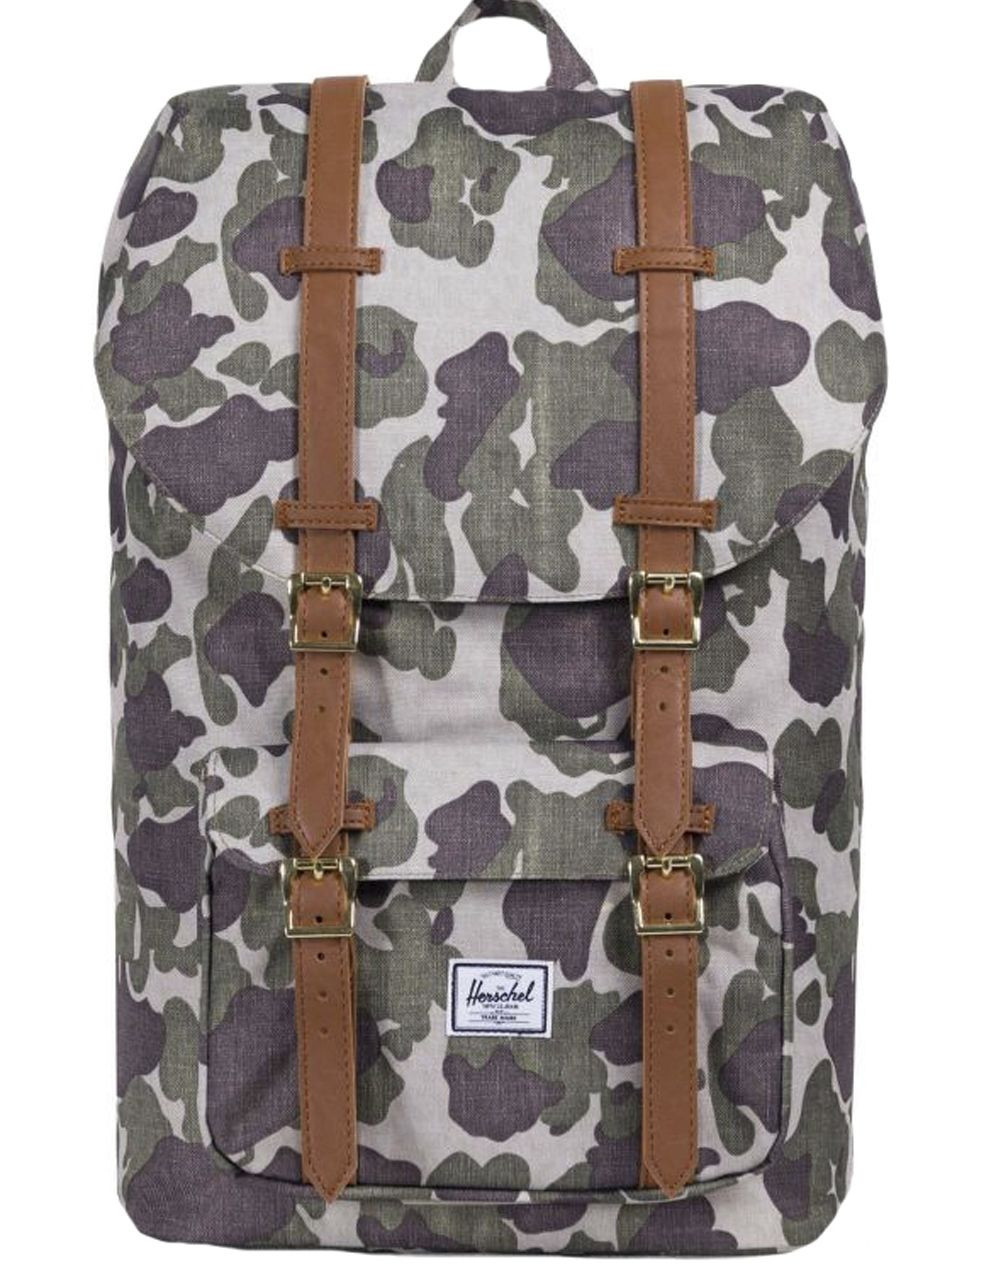 Рюкзак HERSCHEL LITTLE AMERICA Frog Camo/Tan Synthetic Leather